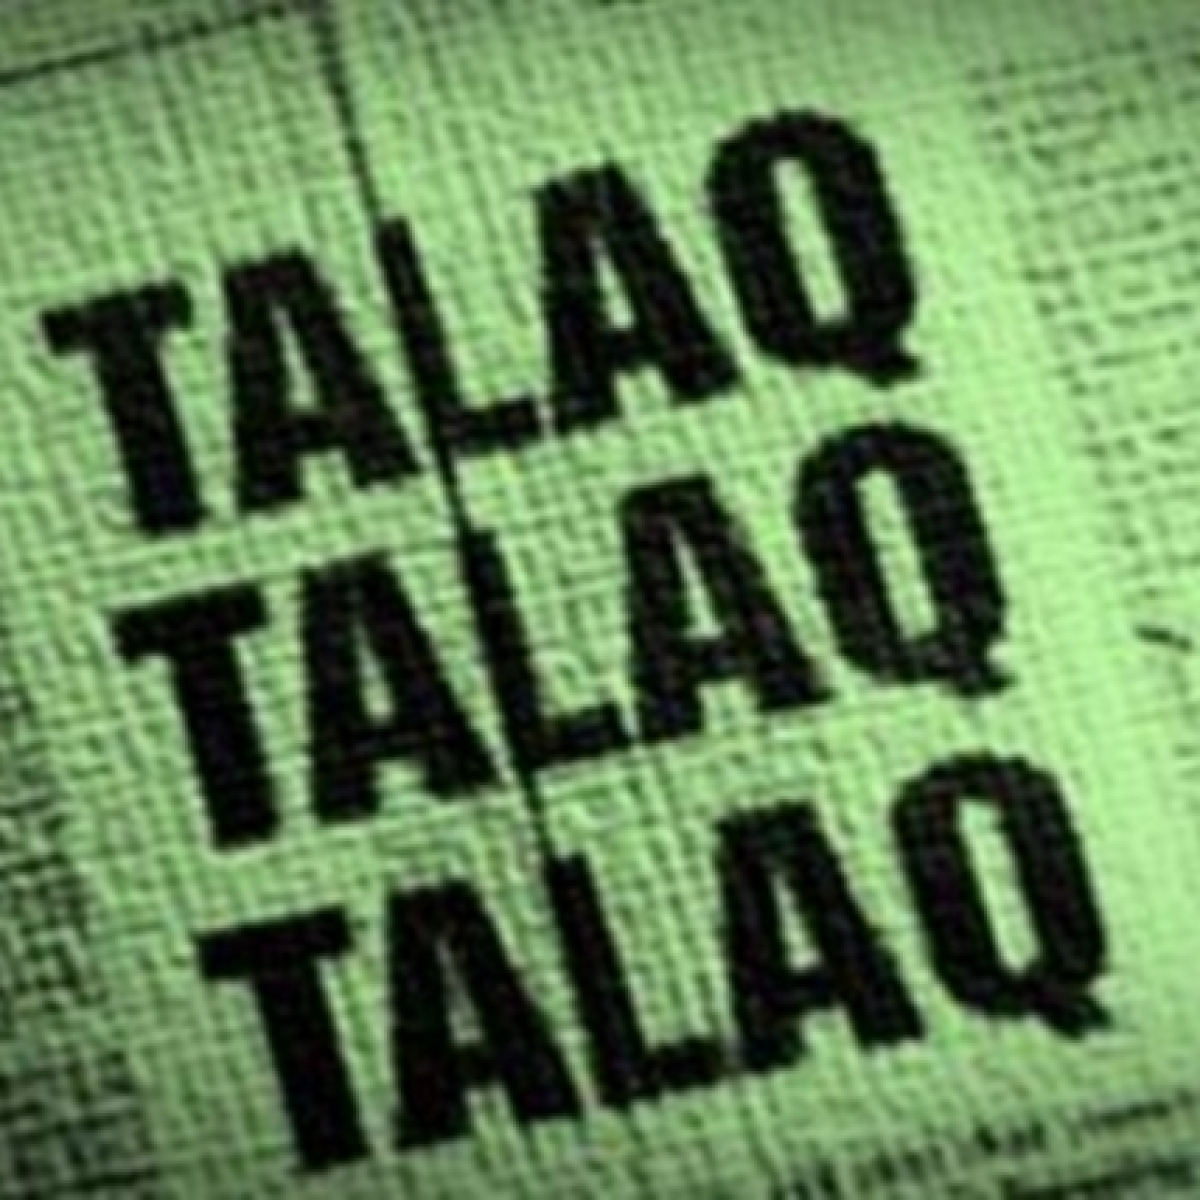 Bhiwandi man booked for giving banned triple talaq to wife